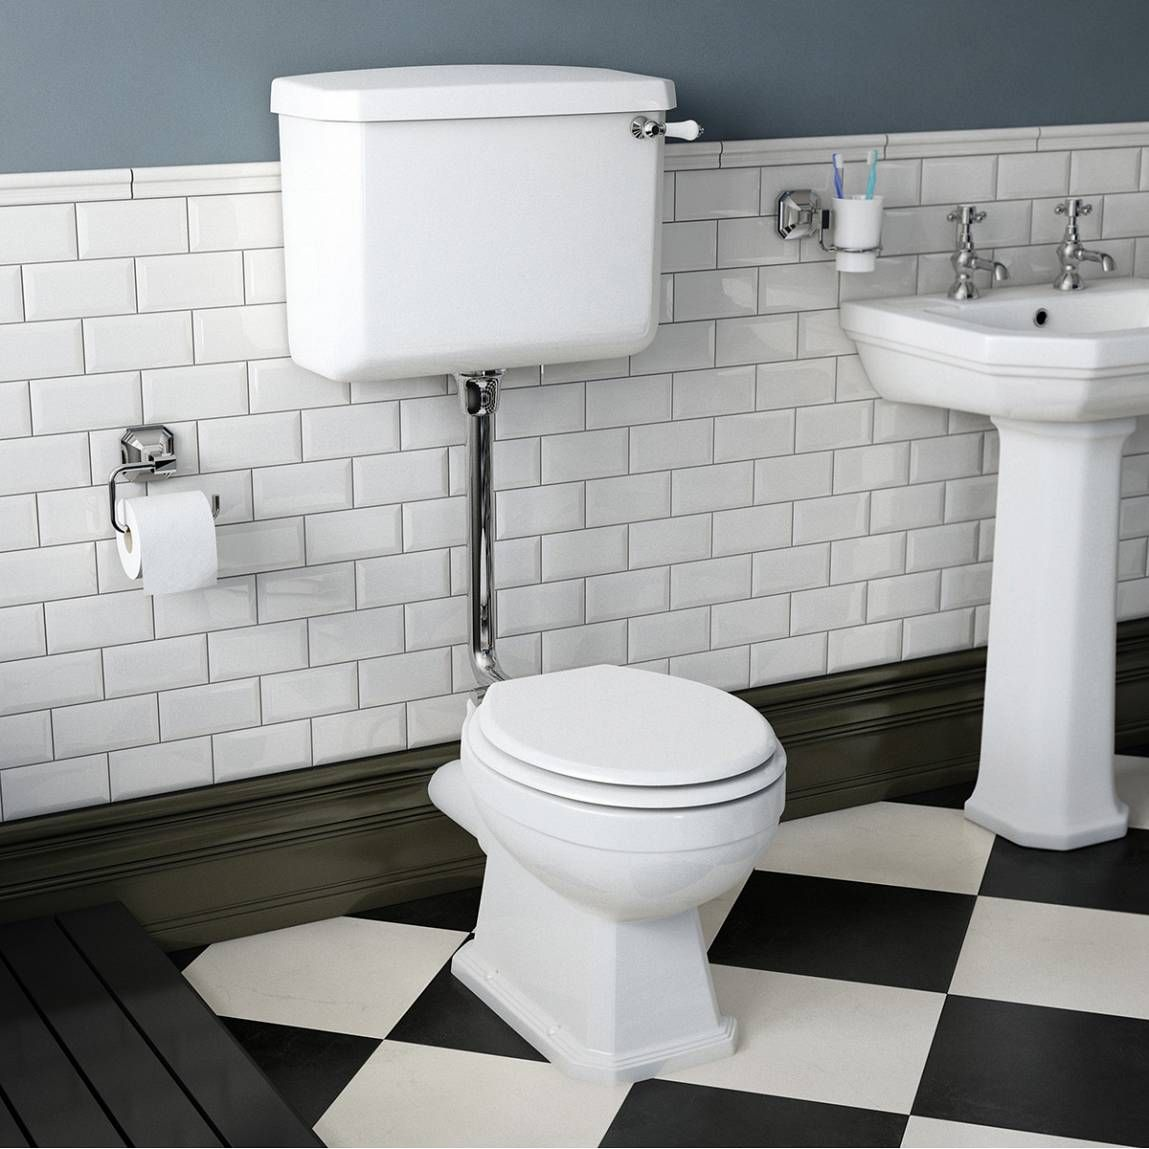 Bathroom Accessories Victoria Plumb regency low level toilet inc luxury white mdf seat - victoria